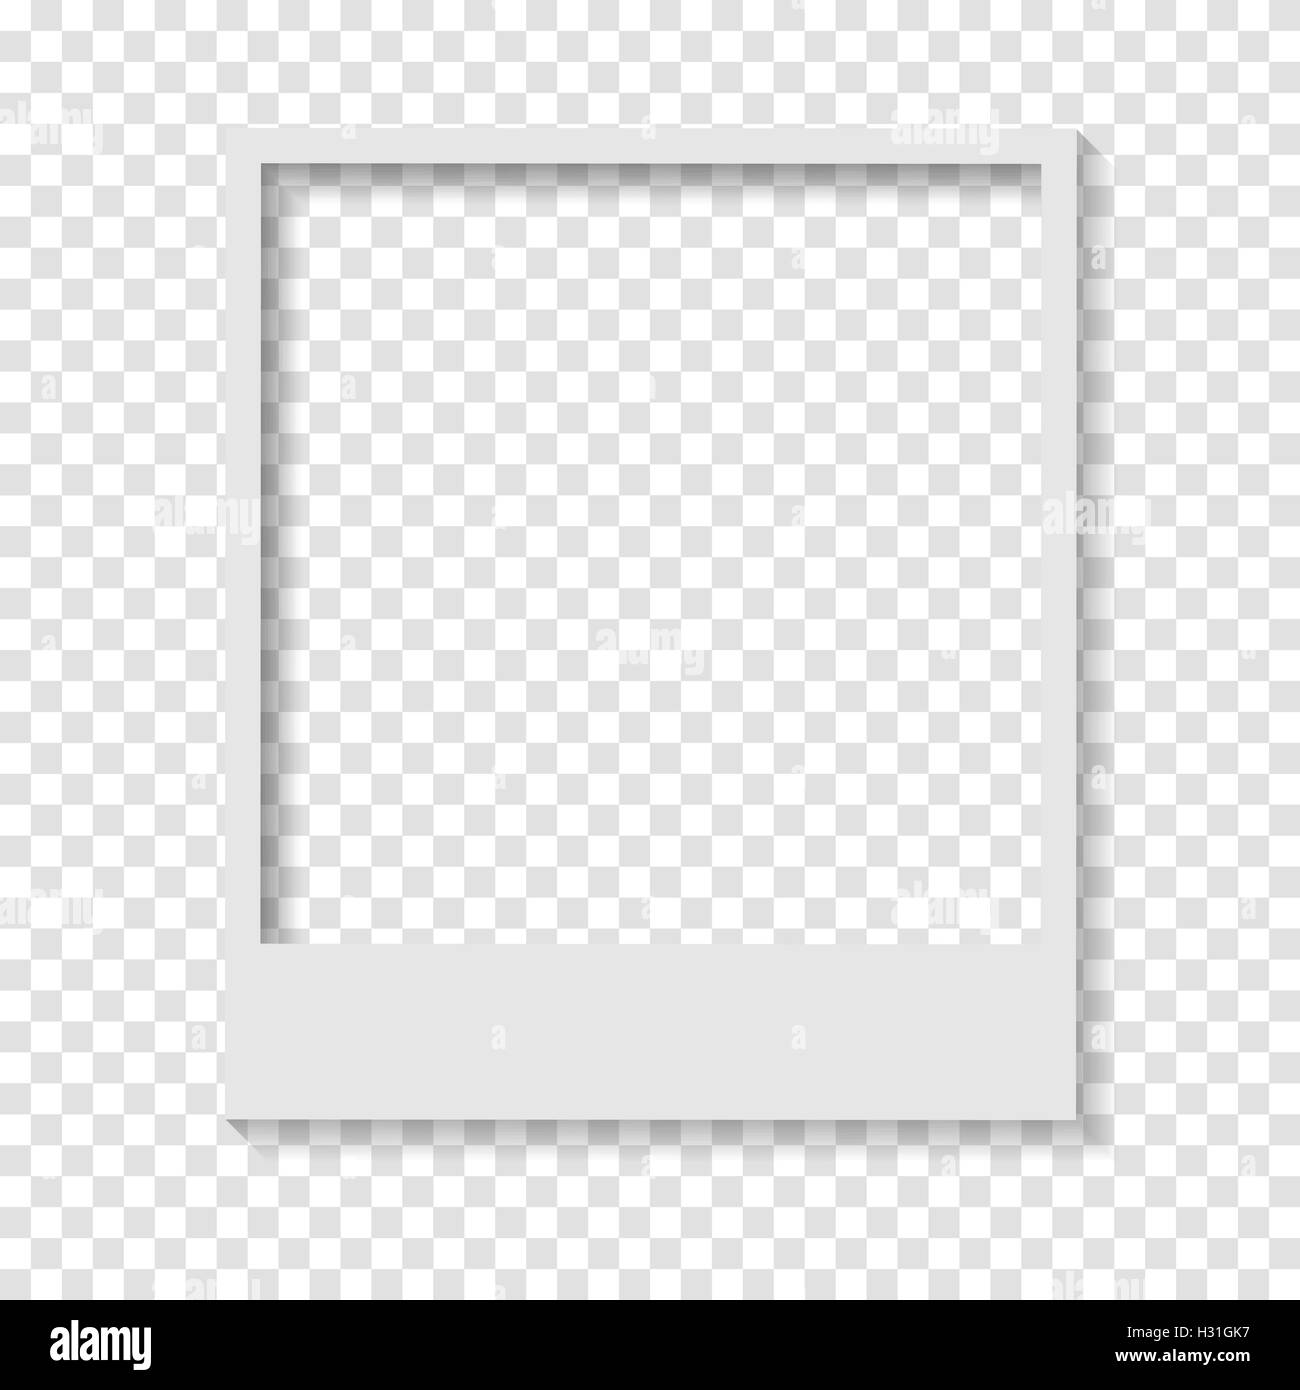 Polaroid Frame Stock Vector Images - Alamy